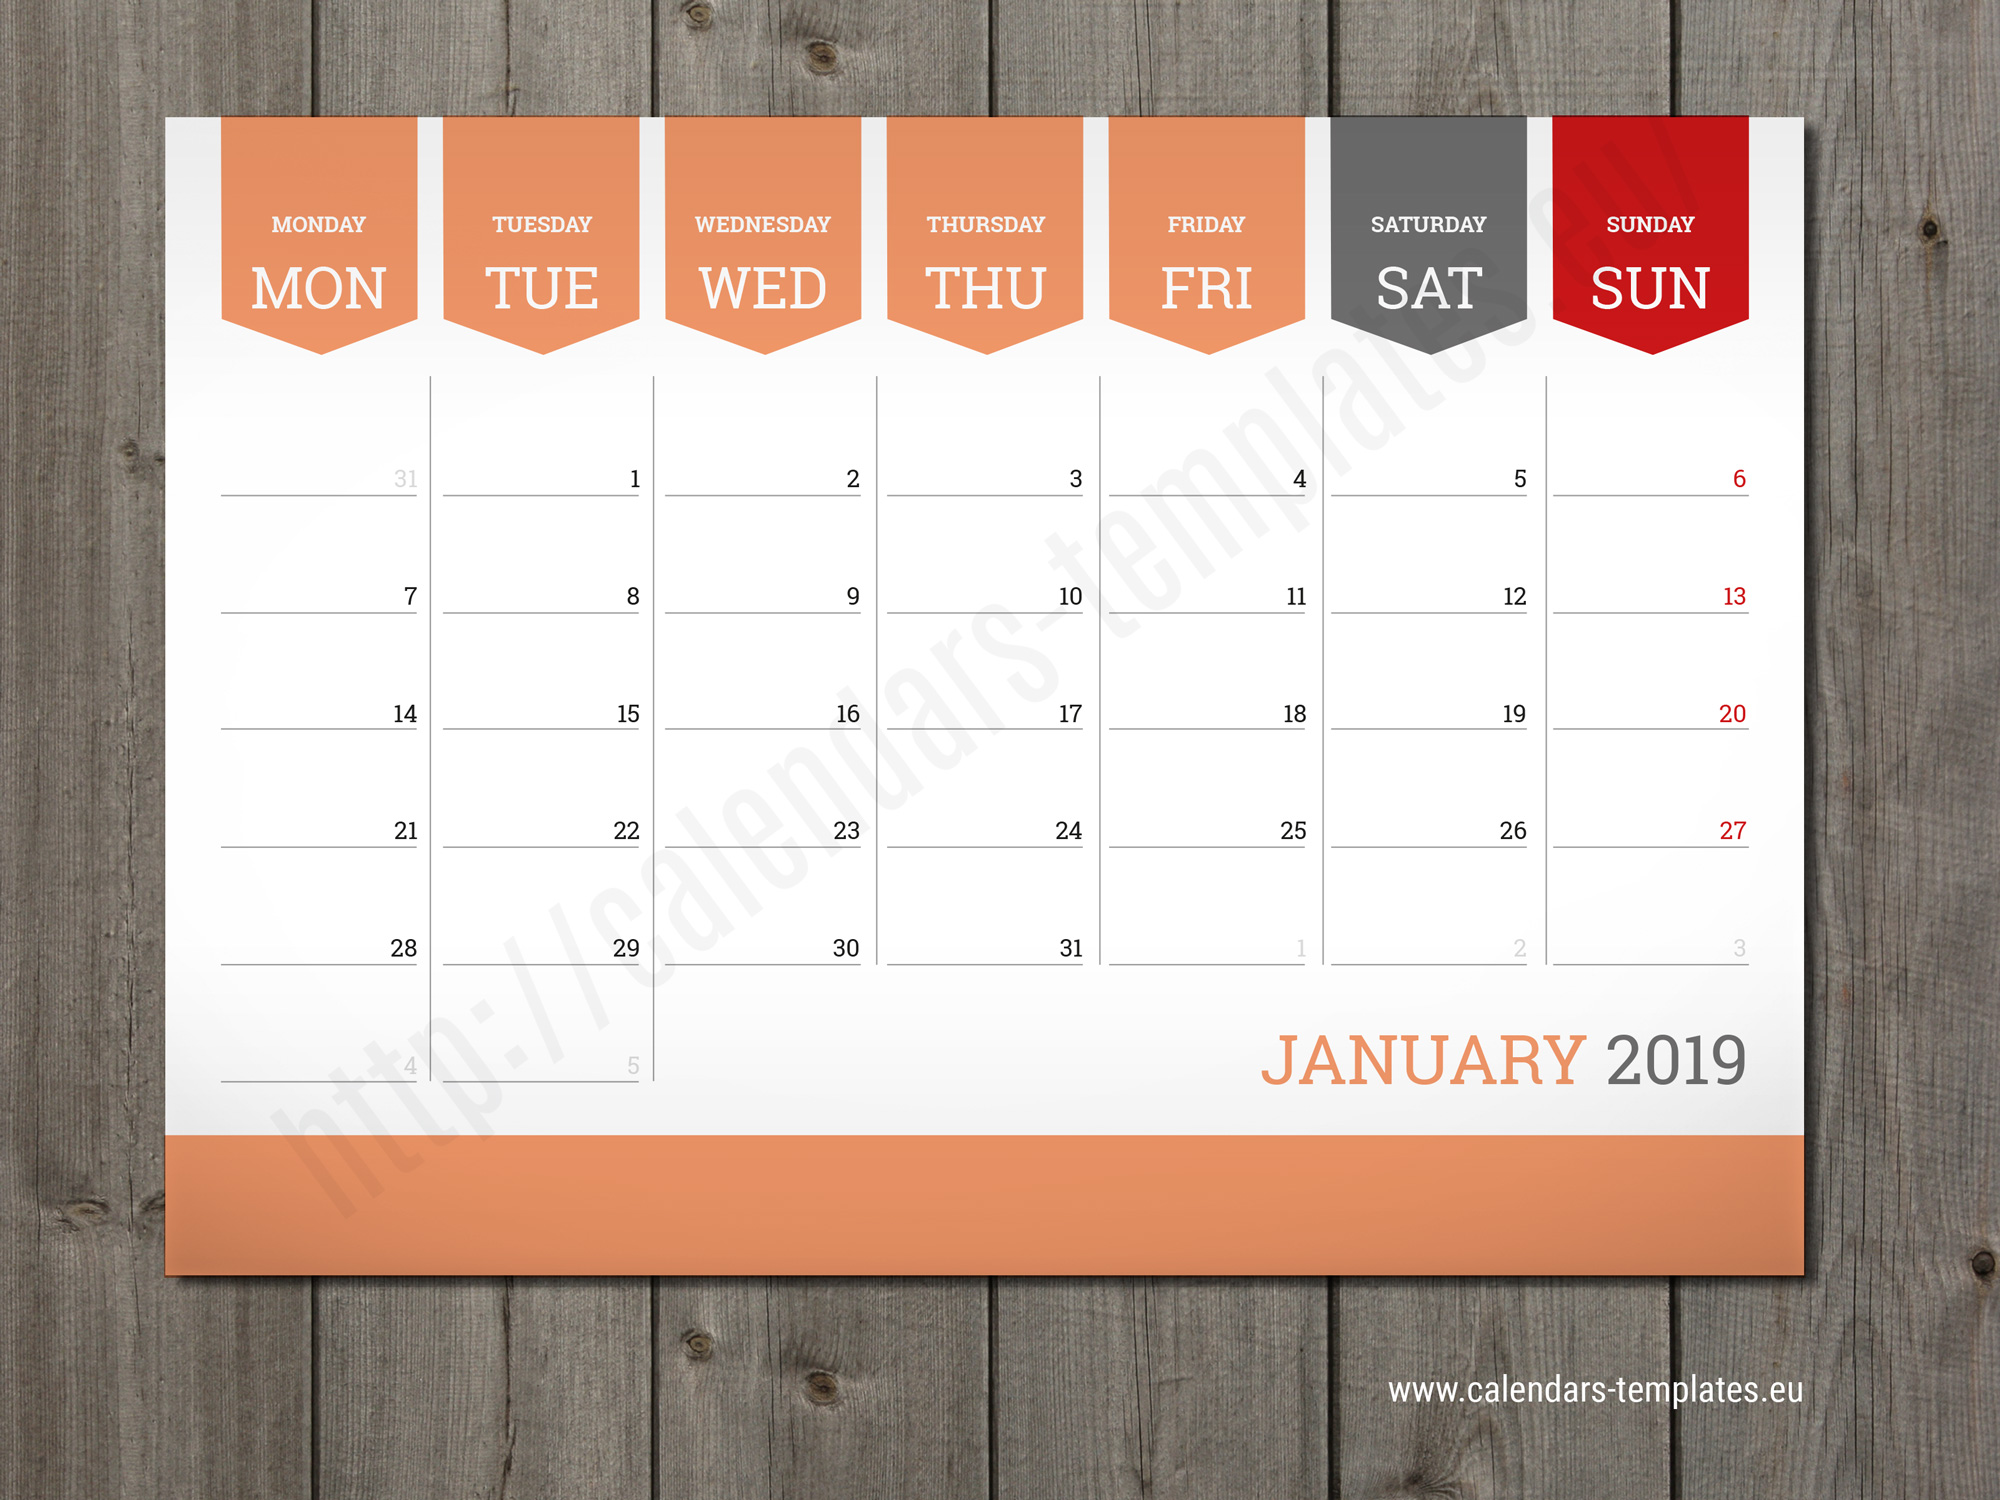 Calendar Planner Template : Monthly calendar planner wall or table pad